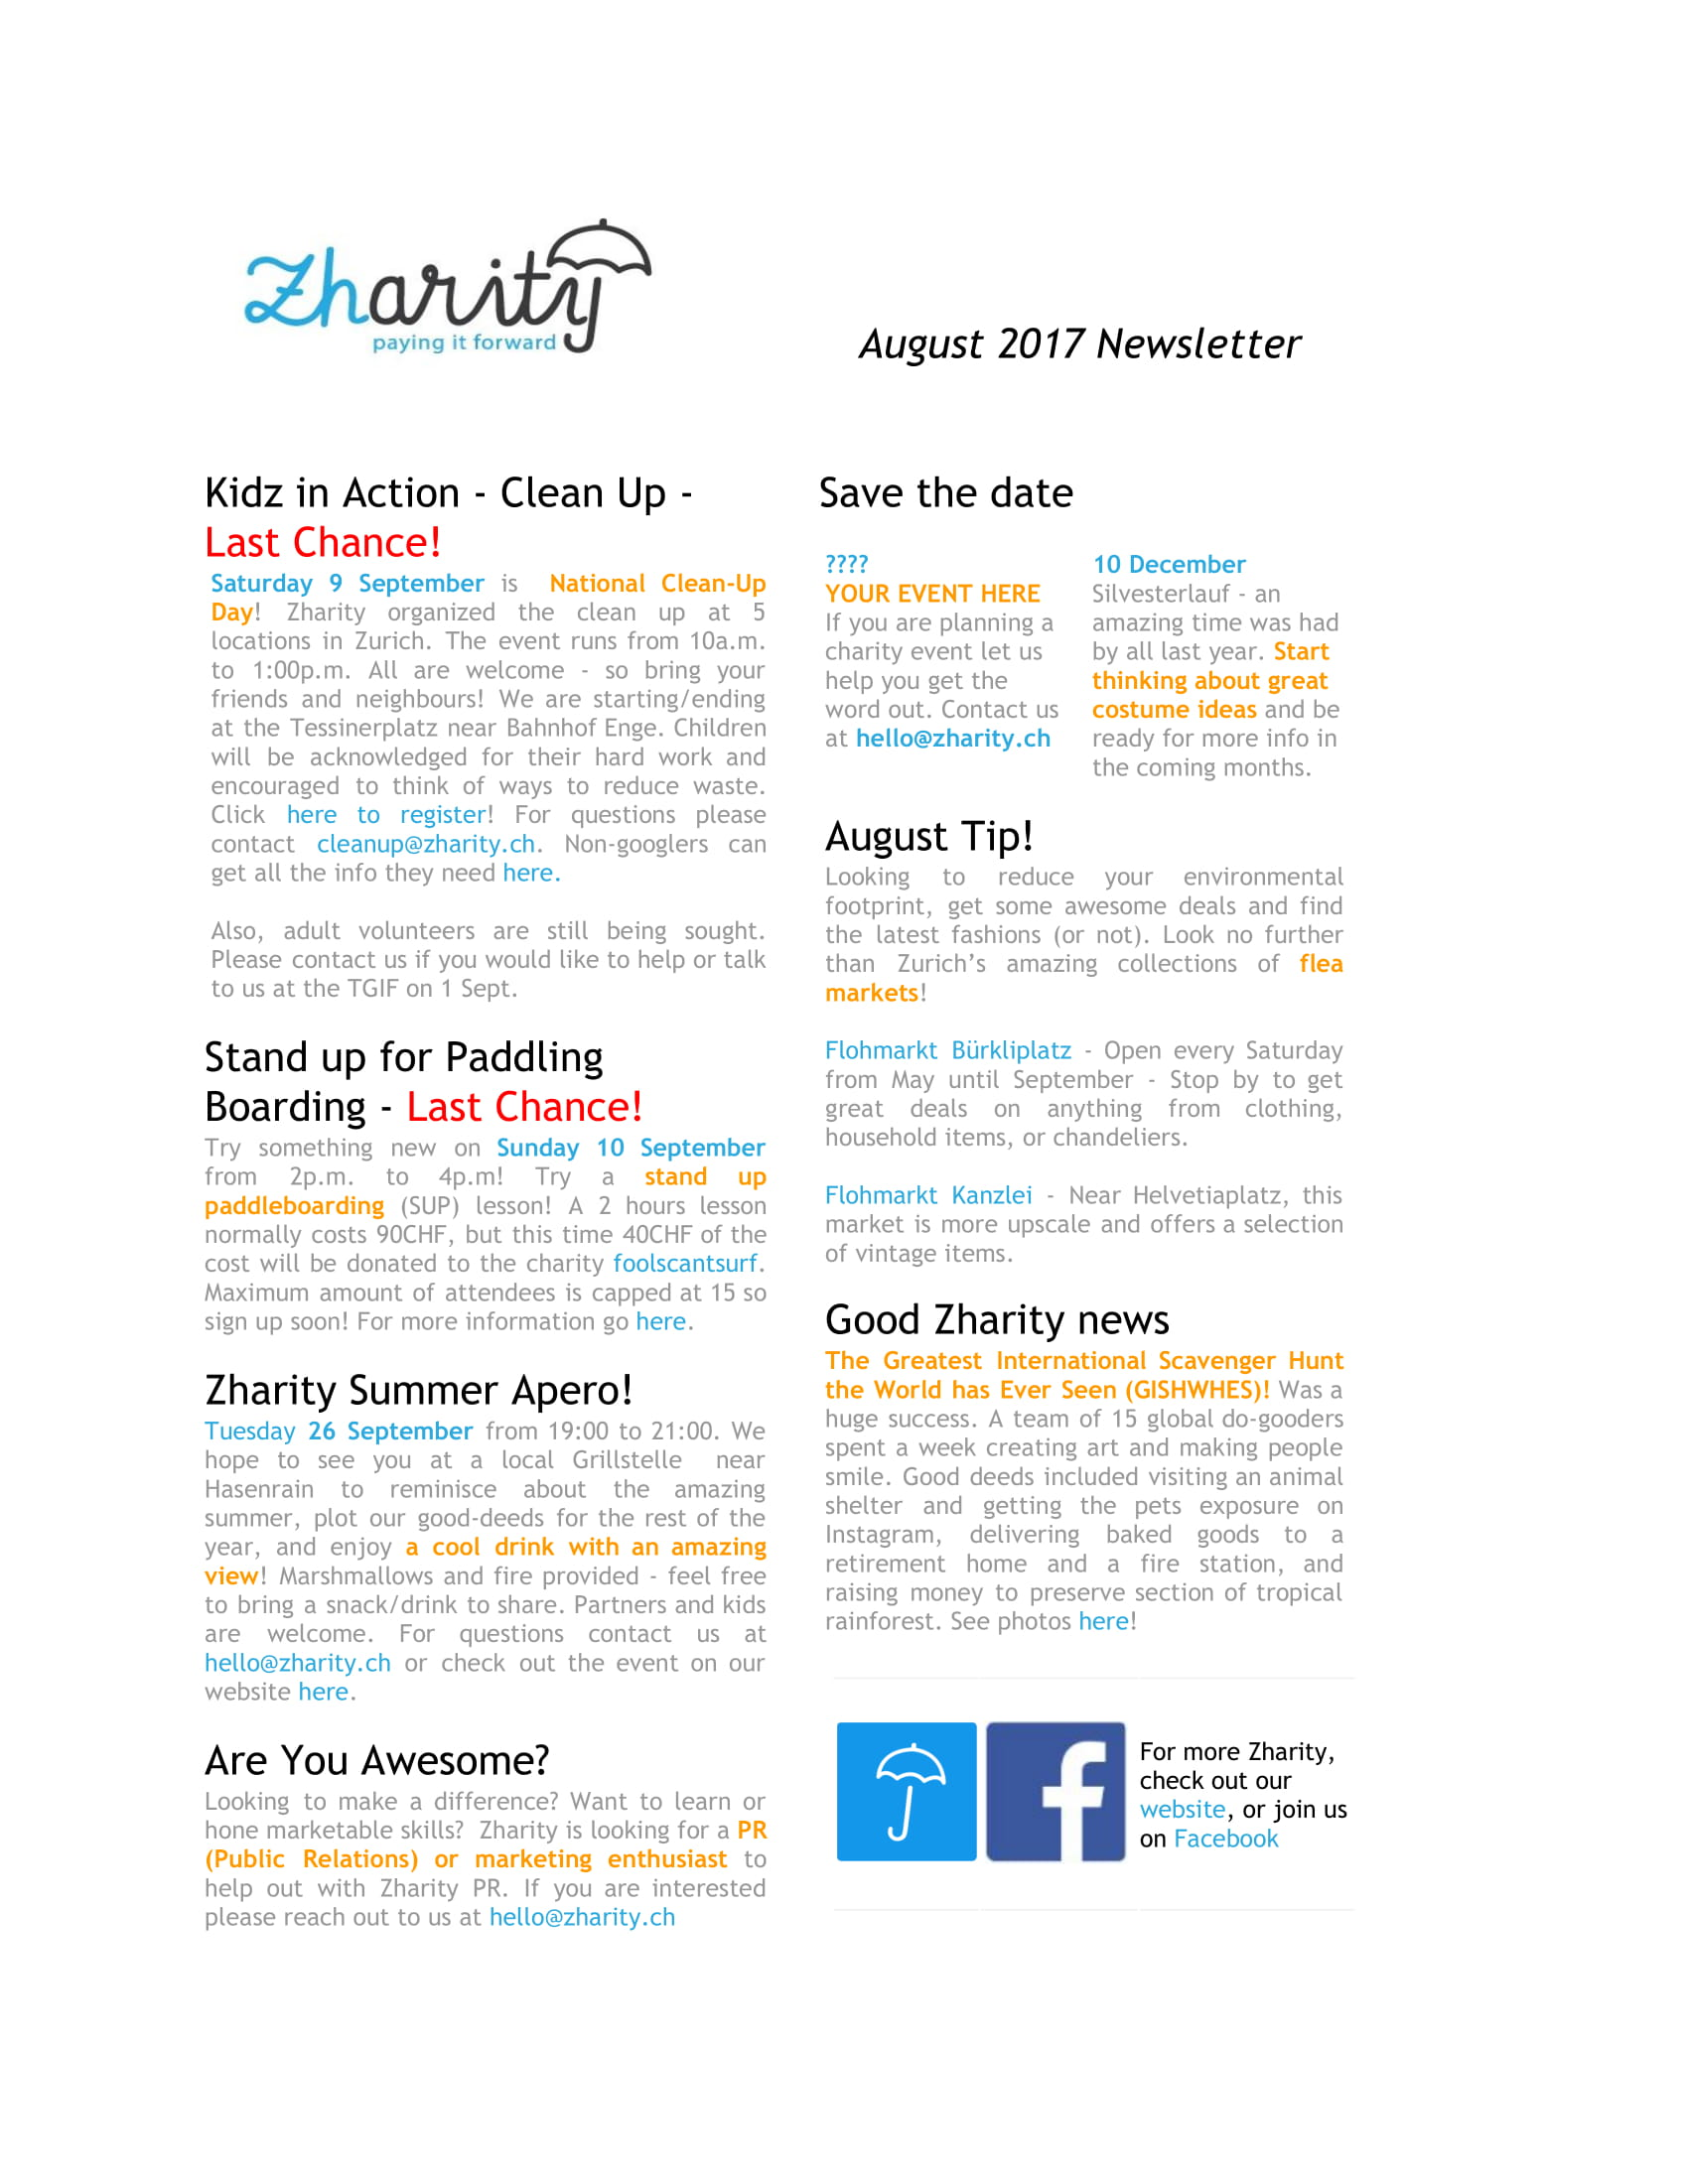 AUGUST2017 -